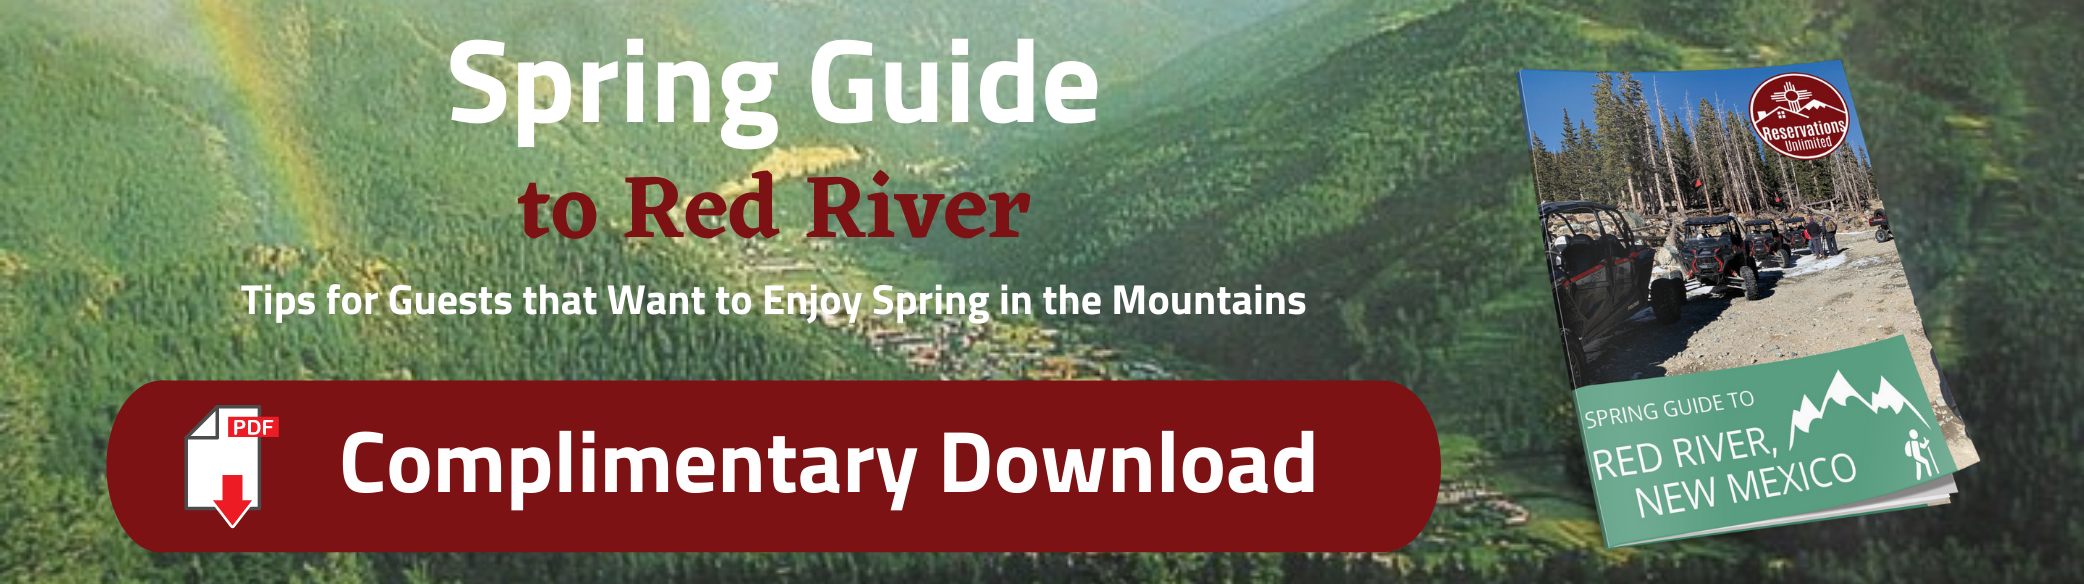 Guide to Spring in Red River, NM